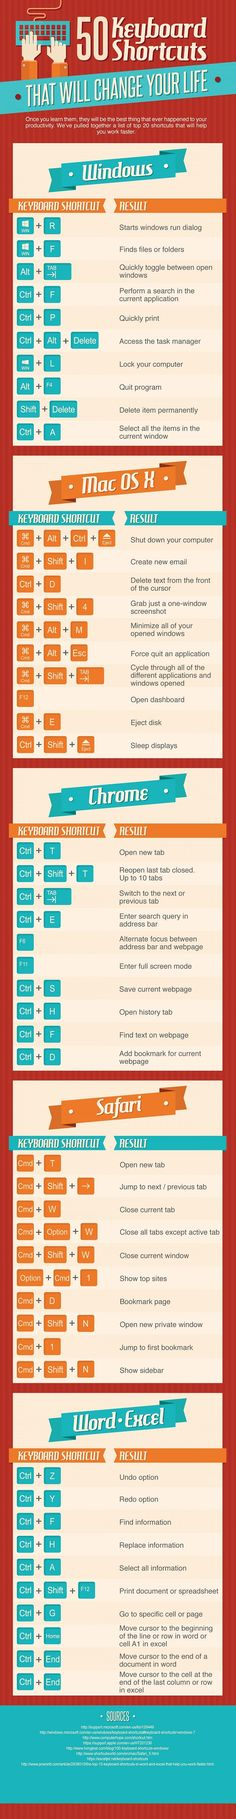 Infographic: 50 Keyboard Shortcuts That Will Change Your Life - because I'm starting to forget them after working on a PC at work all day